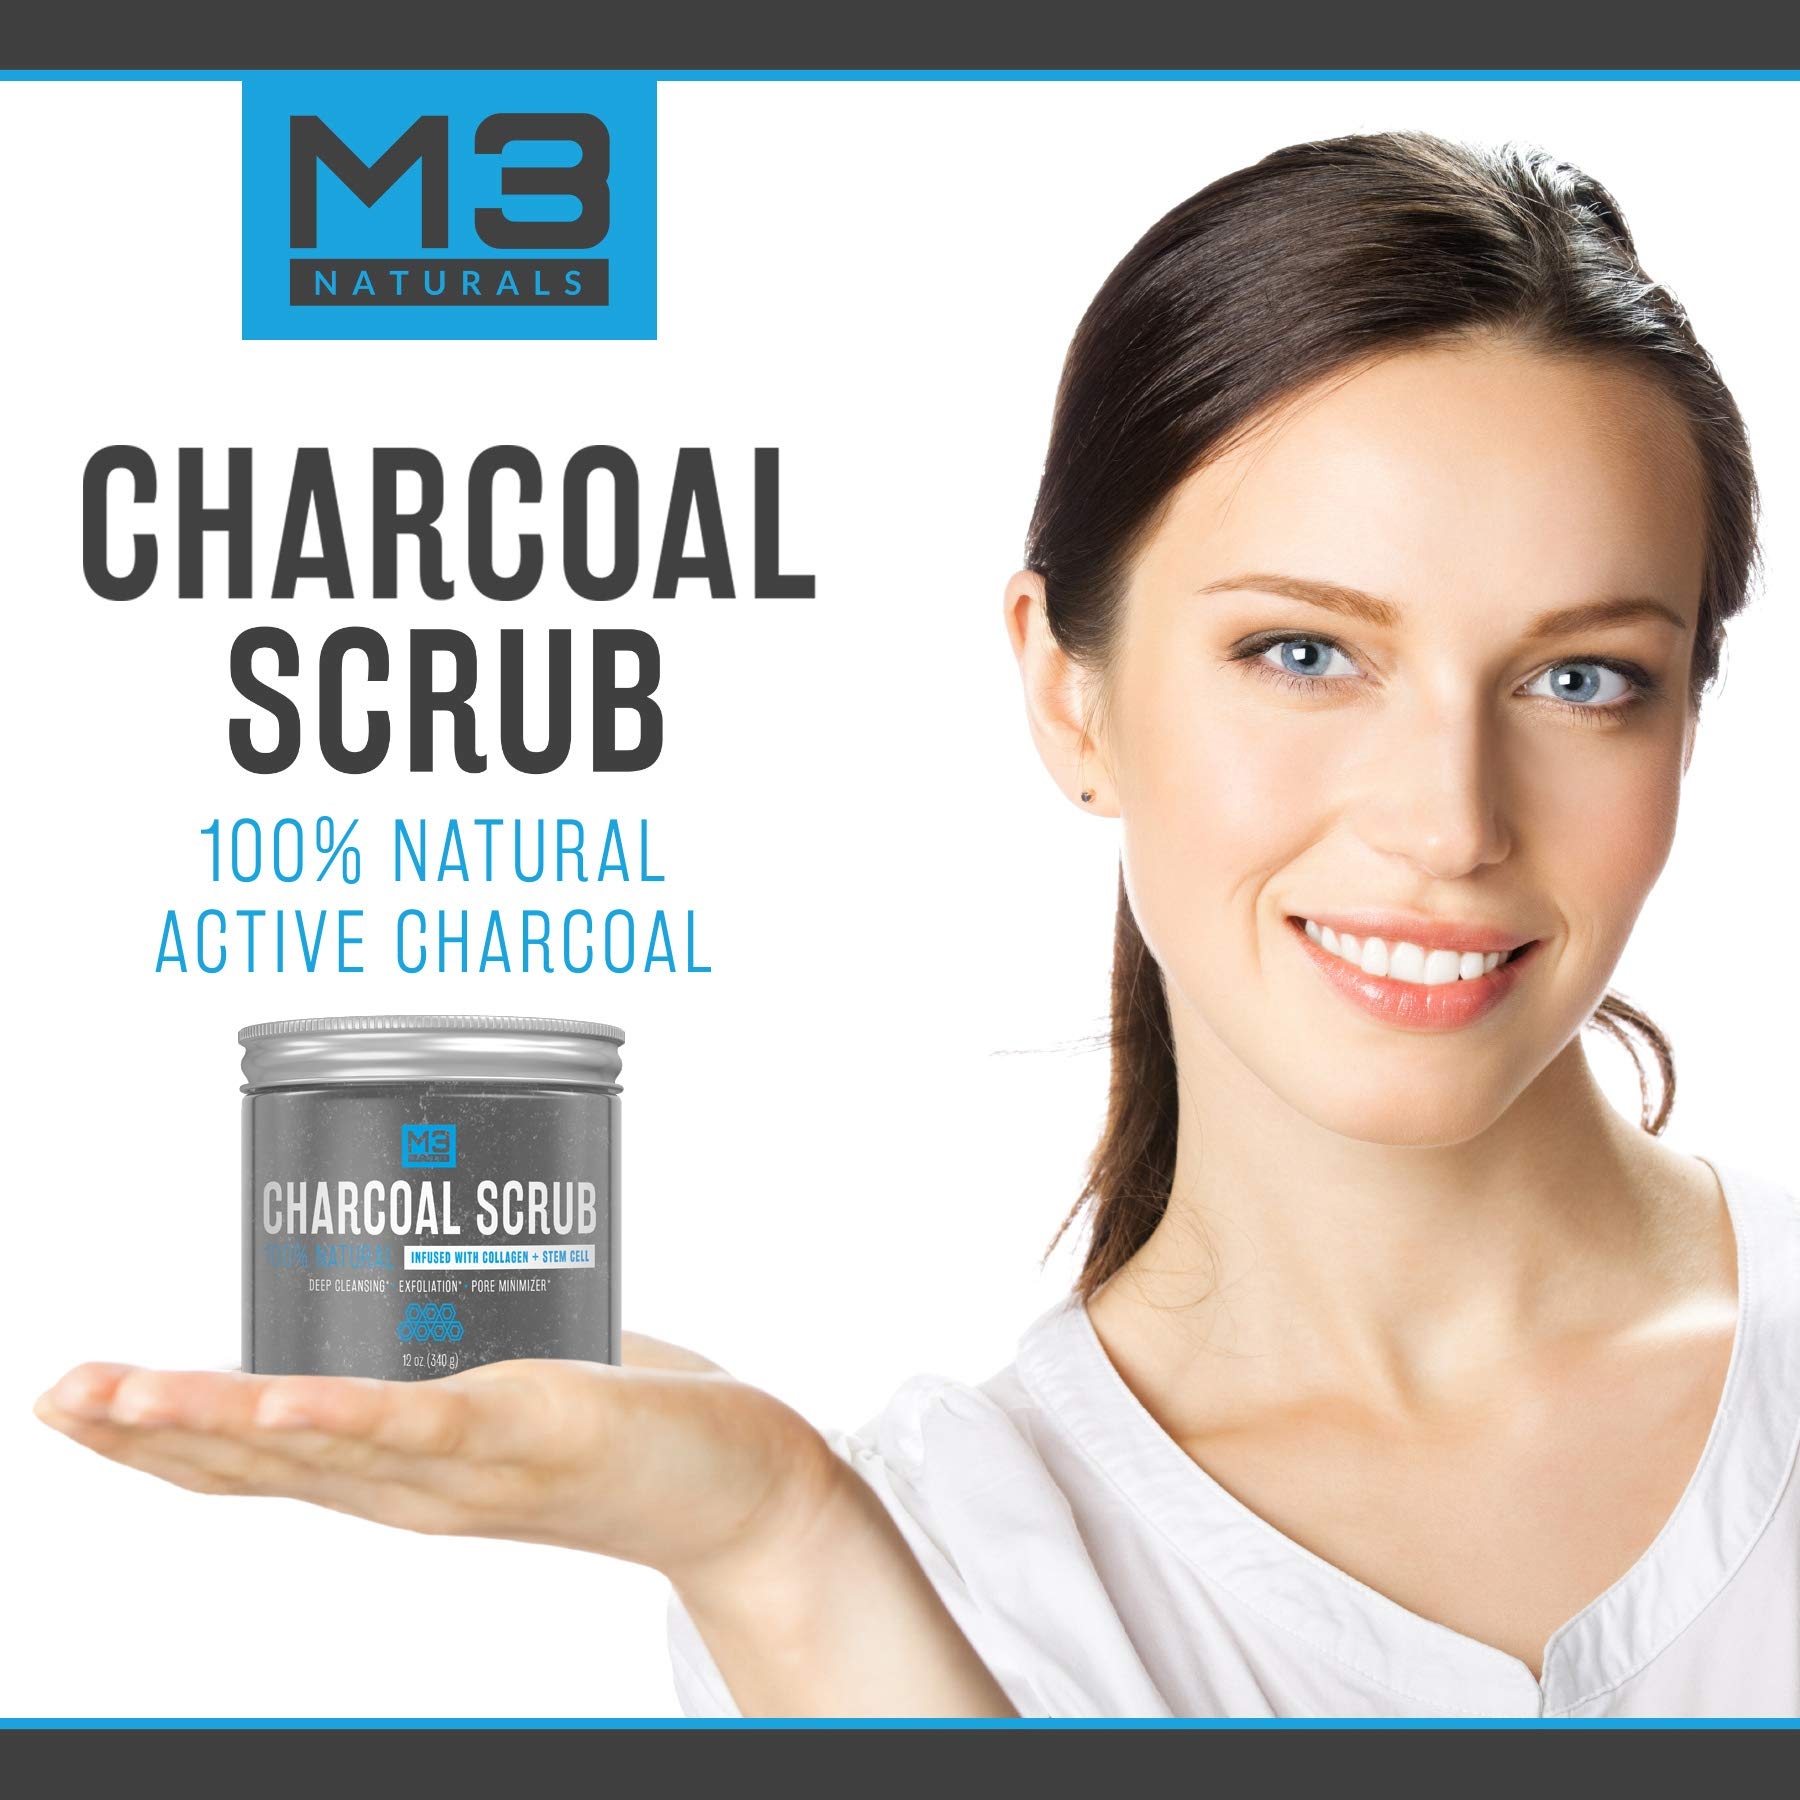 M3 Naturals Activated Charcoal Scrub Infused with Collagen & Stem Cell All Natural Body & Face Skin Care Exfoliating Blackheads Acne Scars Pore Minimizer Reduces Wrinkles Anti Cellulite12 OZ by M3 Naturals (Image #5)